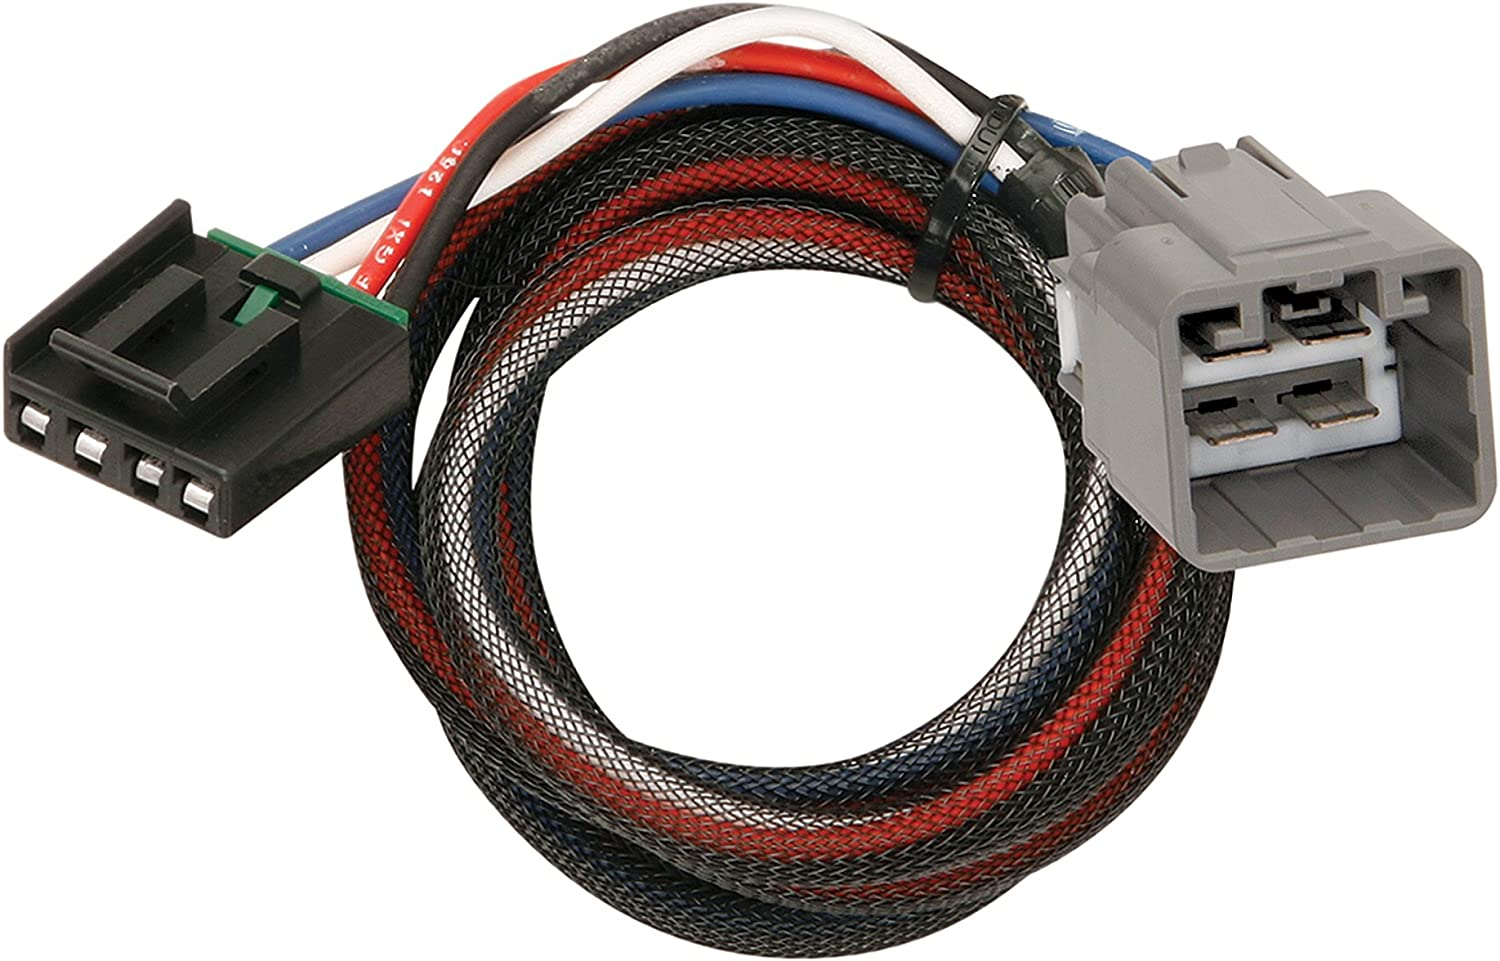 ram trailer wiring harness diagram amazon com reese towpower 85066 brake control wiring harness for  reese towpower 85066 brake control